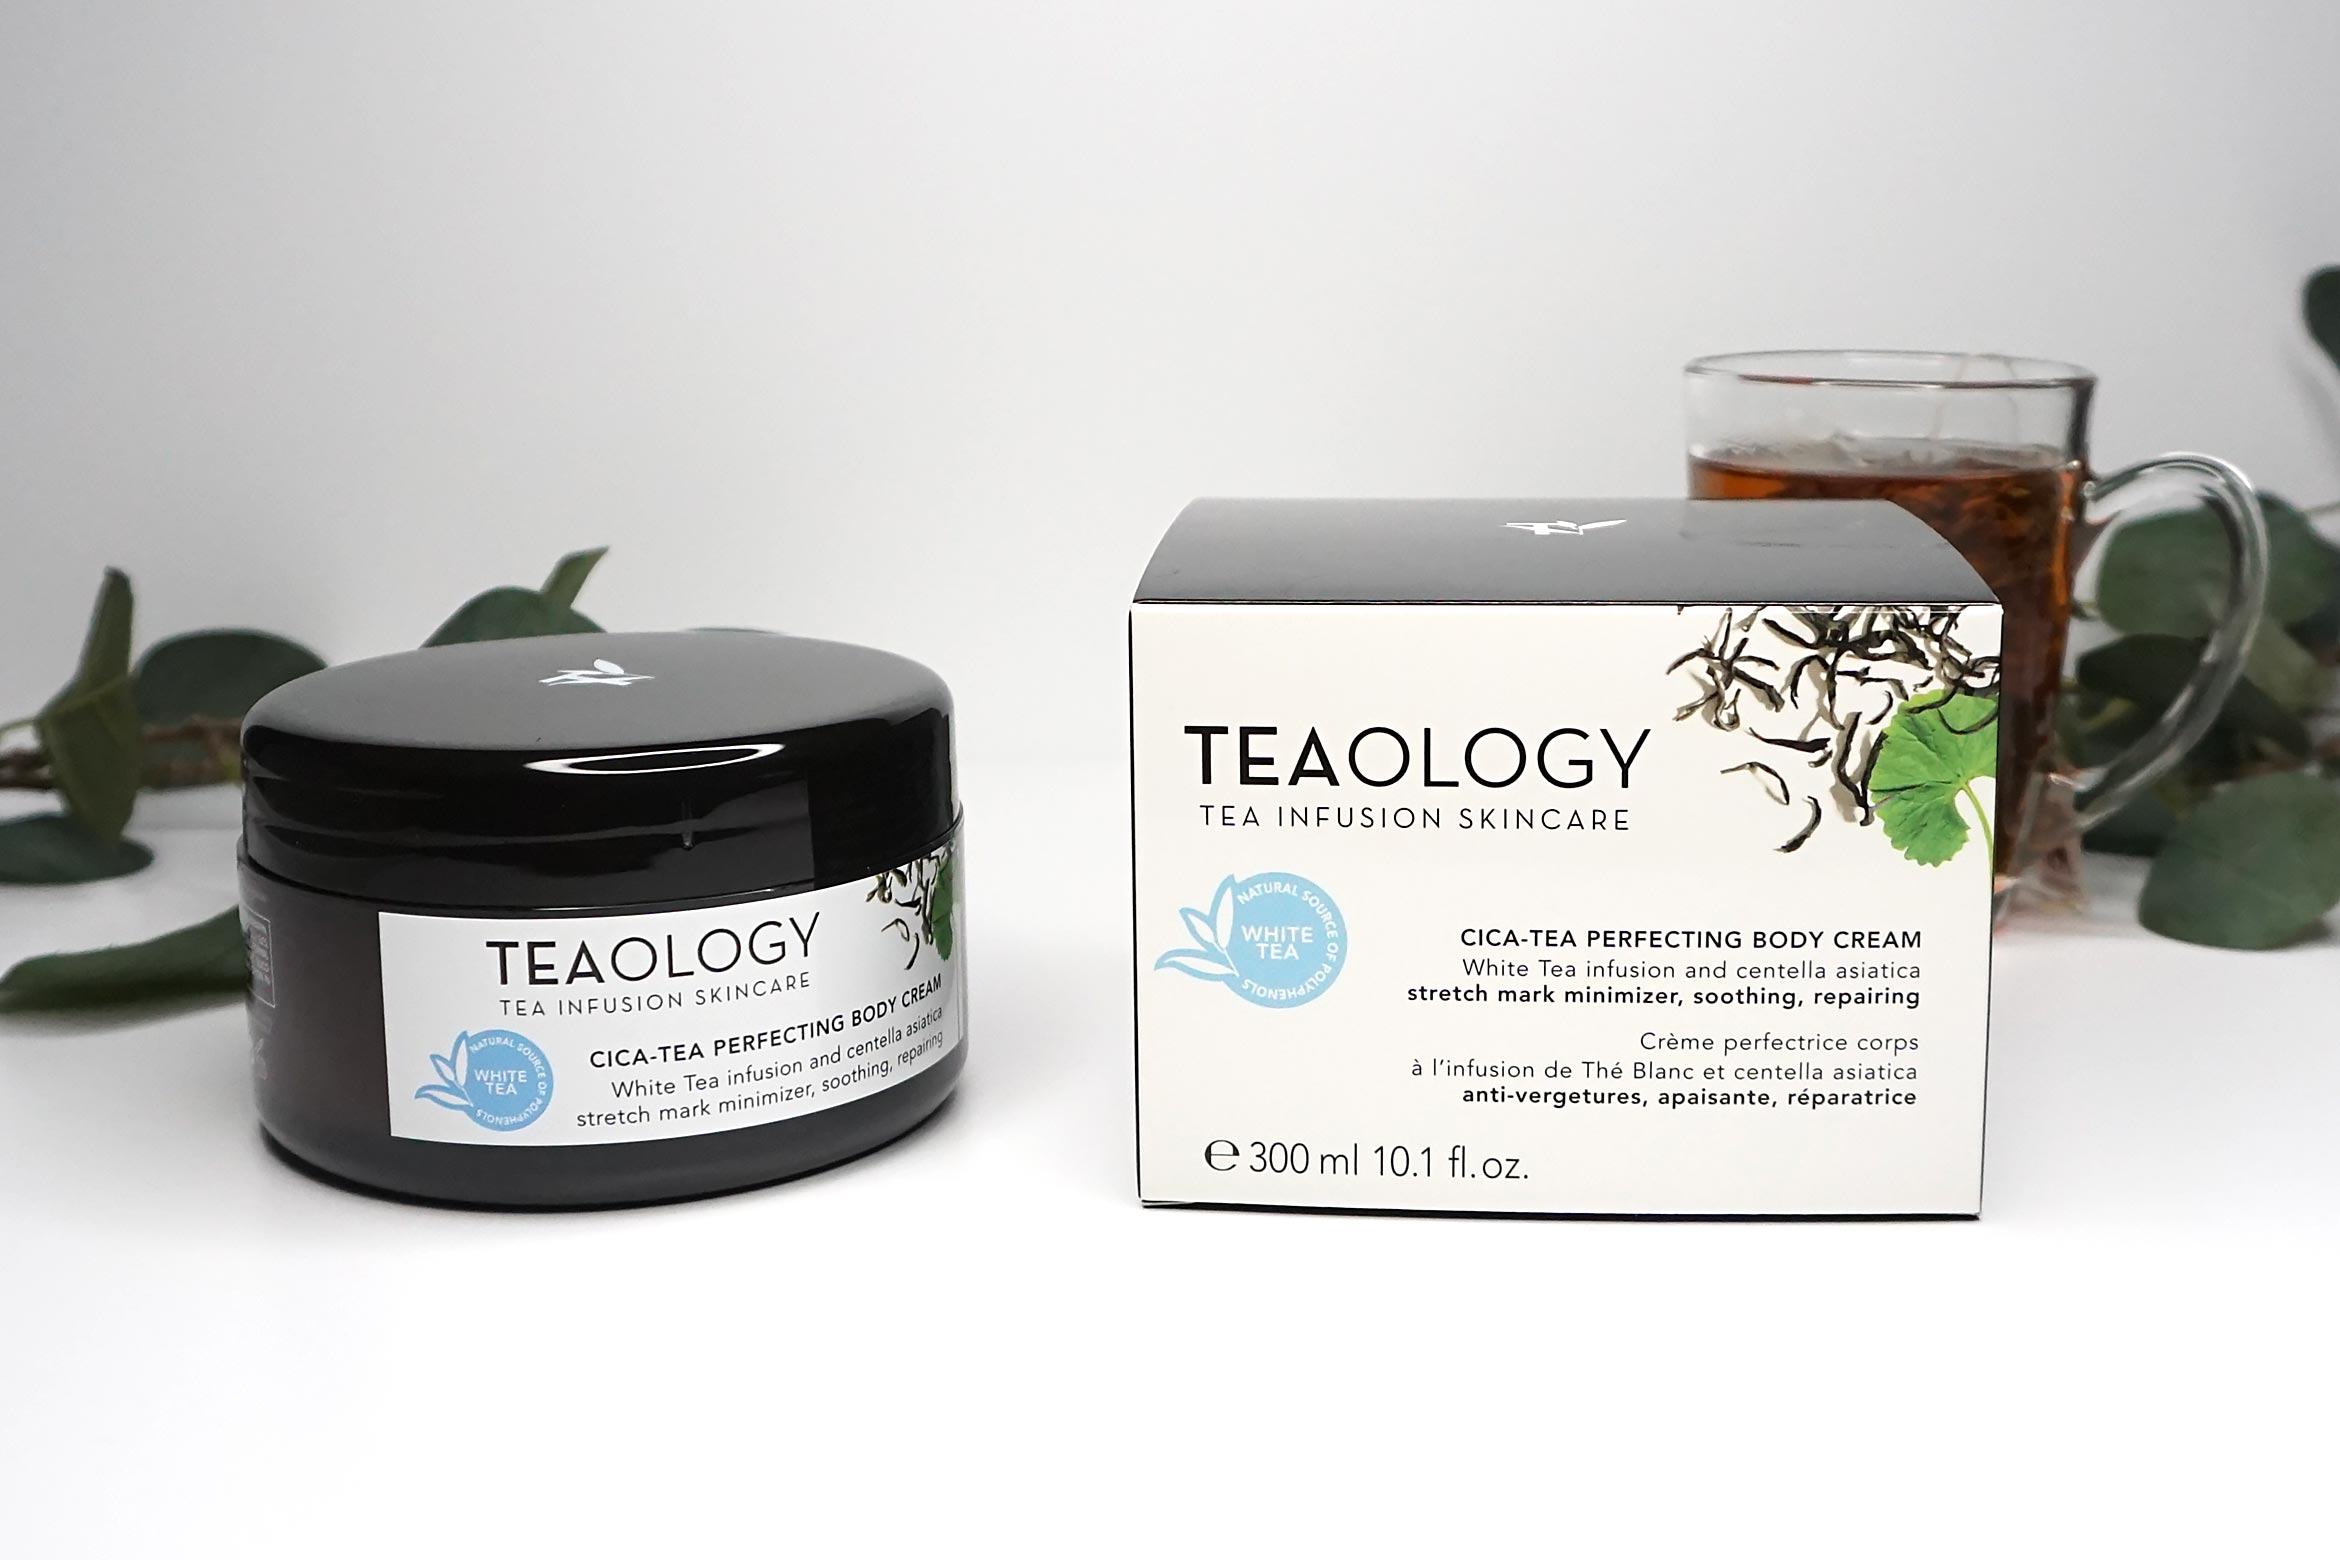 Teaology-cica-perfecting-body-cream-review